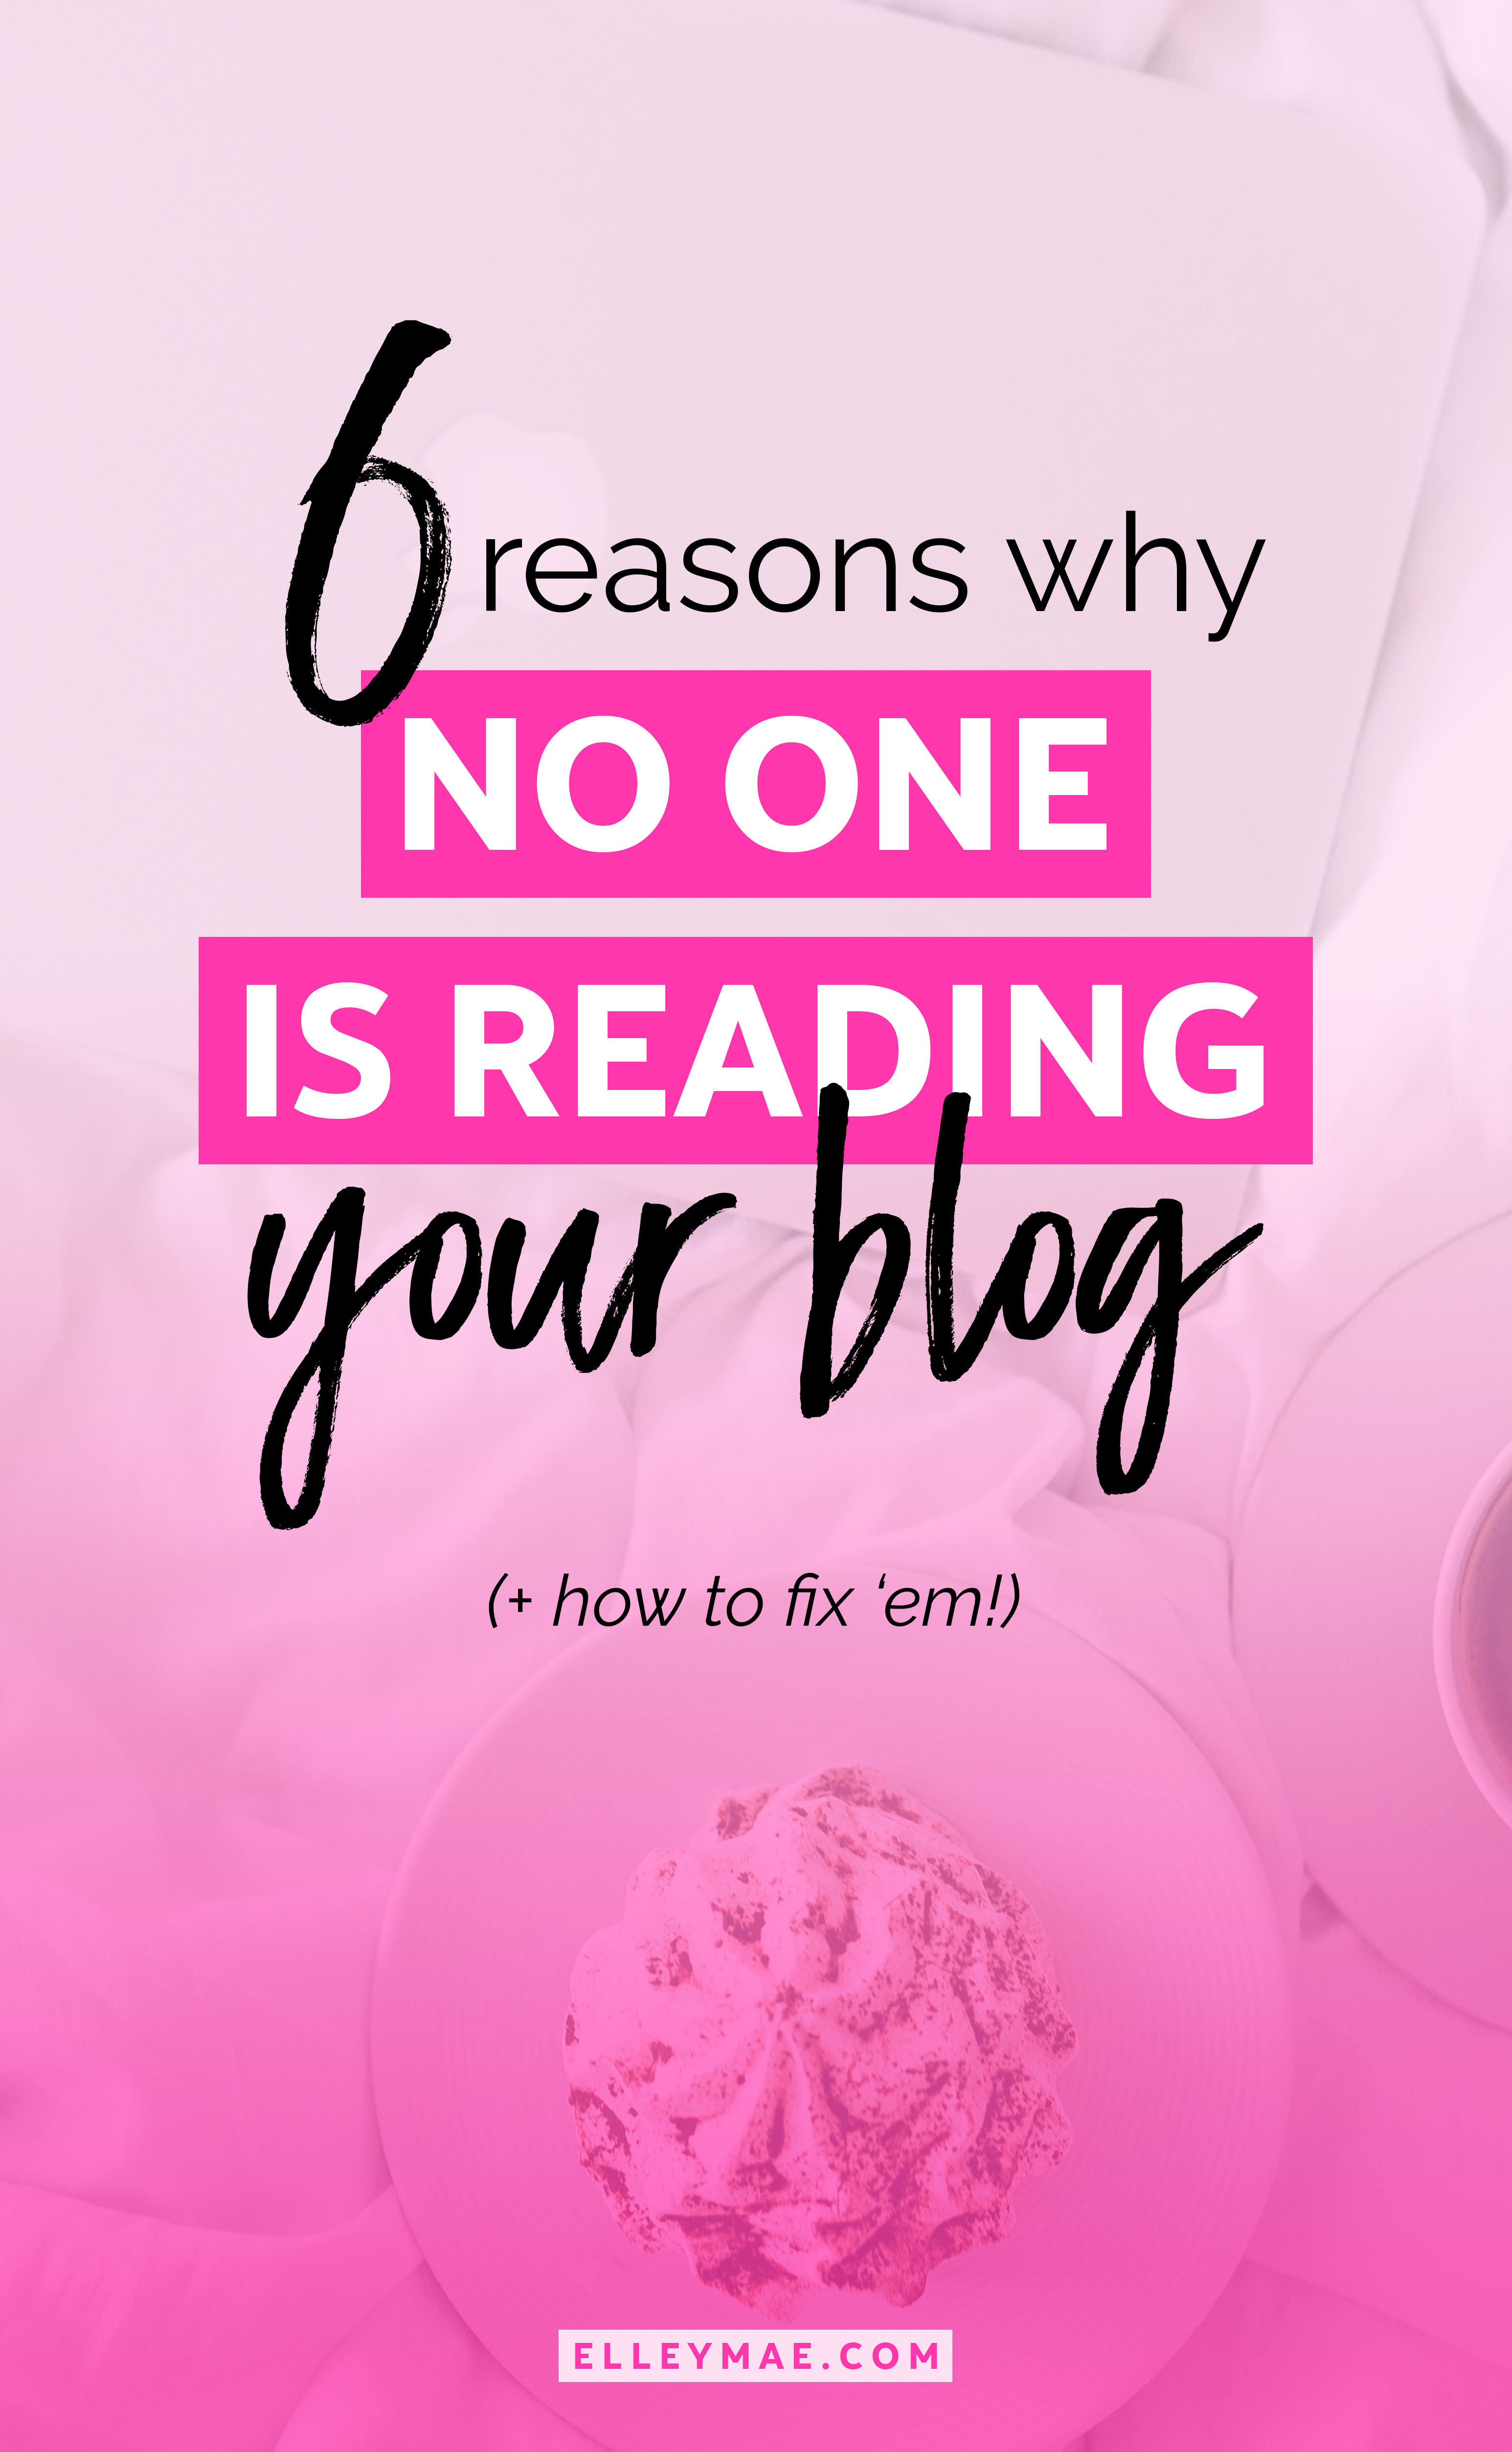 No one reading your blog? Here's 6 reasons why!   Want to know how to get traffic to your blog, grow your audience & increase your influence? Here's your chance! Learn 6 ways to grow your blog traffic now on ElleyMae.com   Blogging Tips, Blog Ideas, Blog Traffic Tips, Grow Your Blog Traffic, Grow My Blog Traffic, Blog Strategy, Traffic Ideas, Traffic Tips   ElleyMae.com